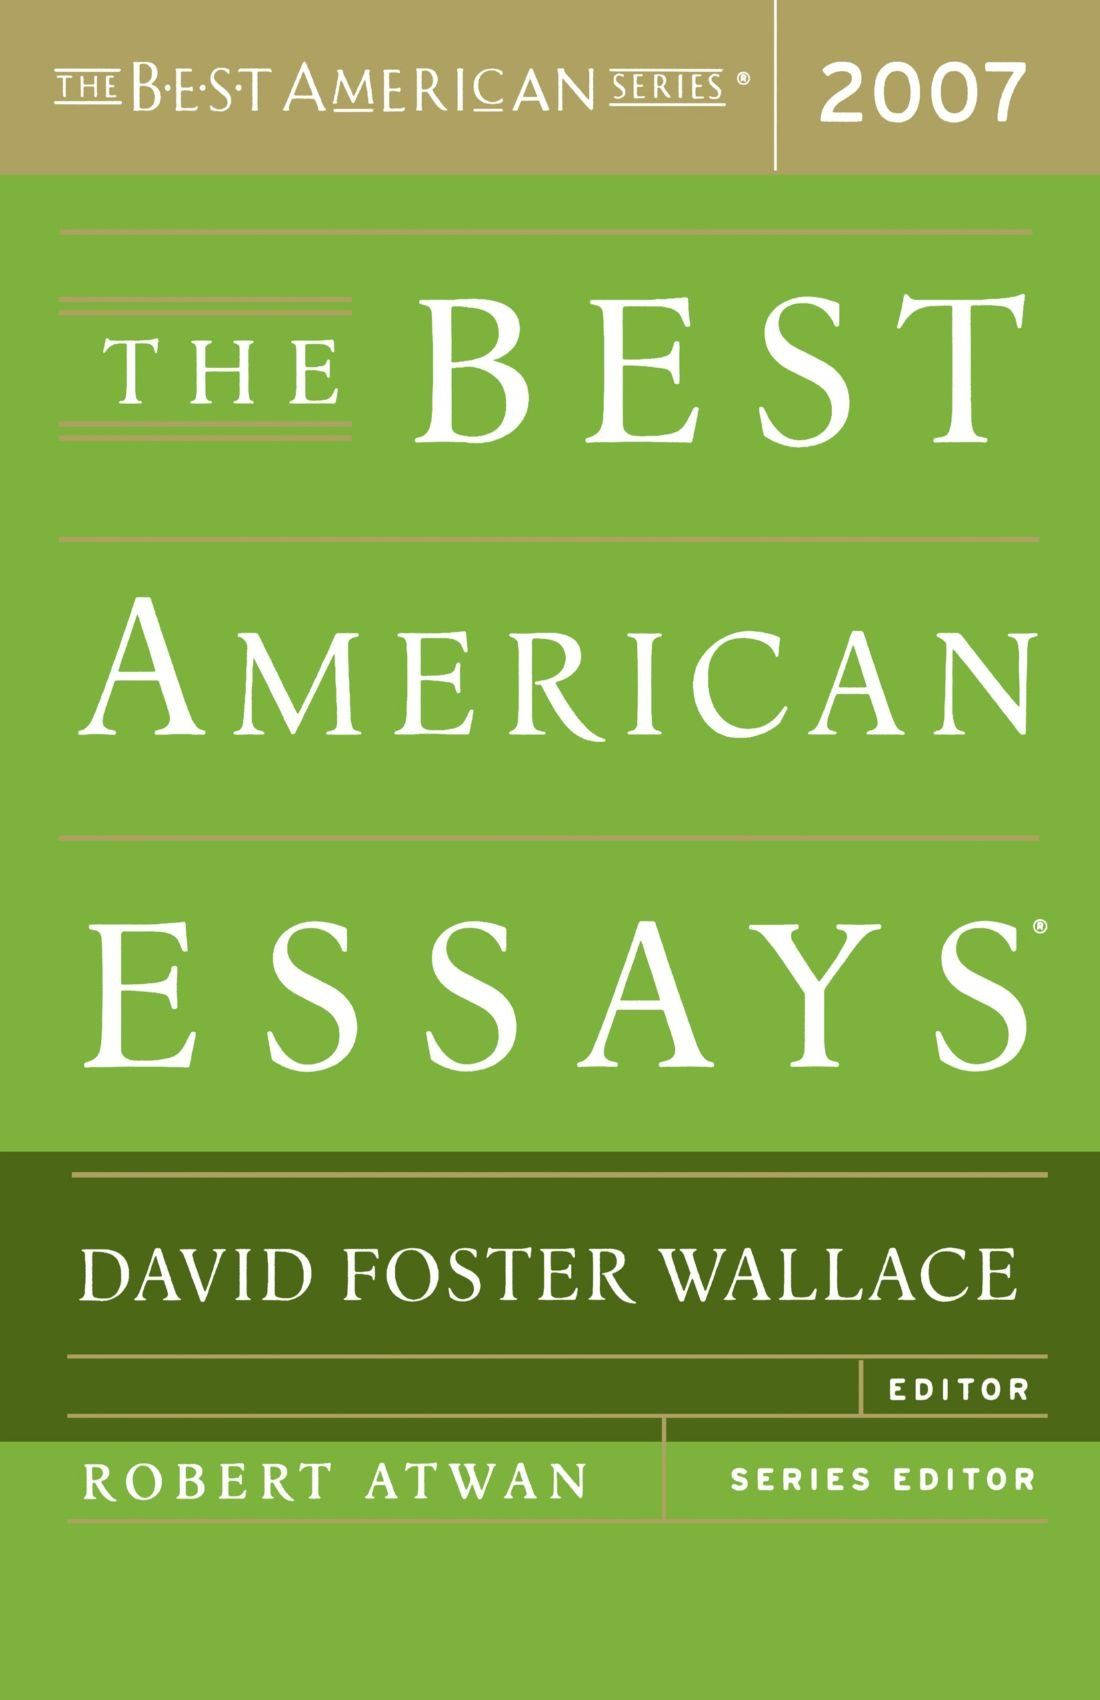 001 David Foster Wallace Essays Essay Example Formidable Amazon And The Long Thing New On Novels Cruise Ship Full